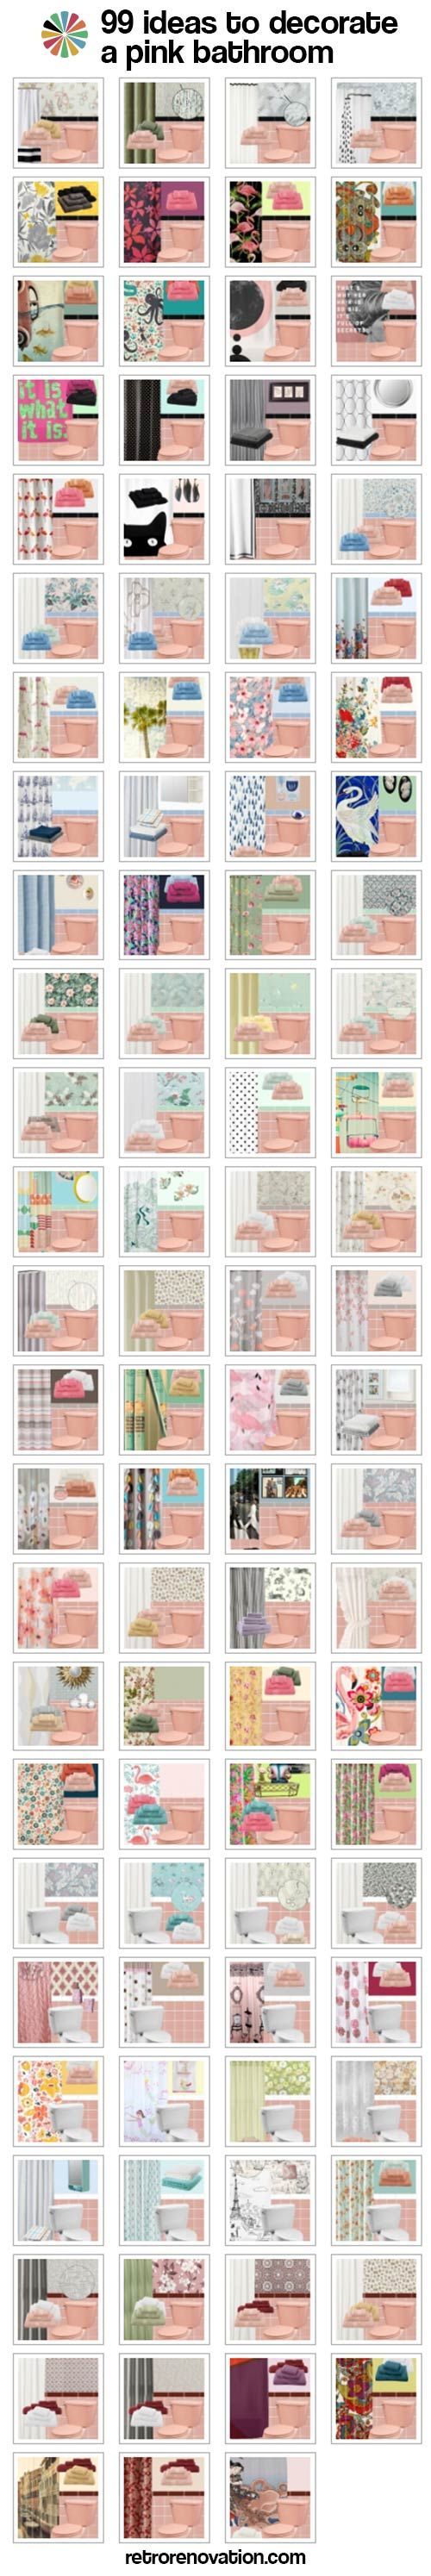 size towels and on magnificent ideas full gold bedroompink of towelspink bathroom picture decorpink design best bathrooms pink decor cabinets pinterest